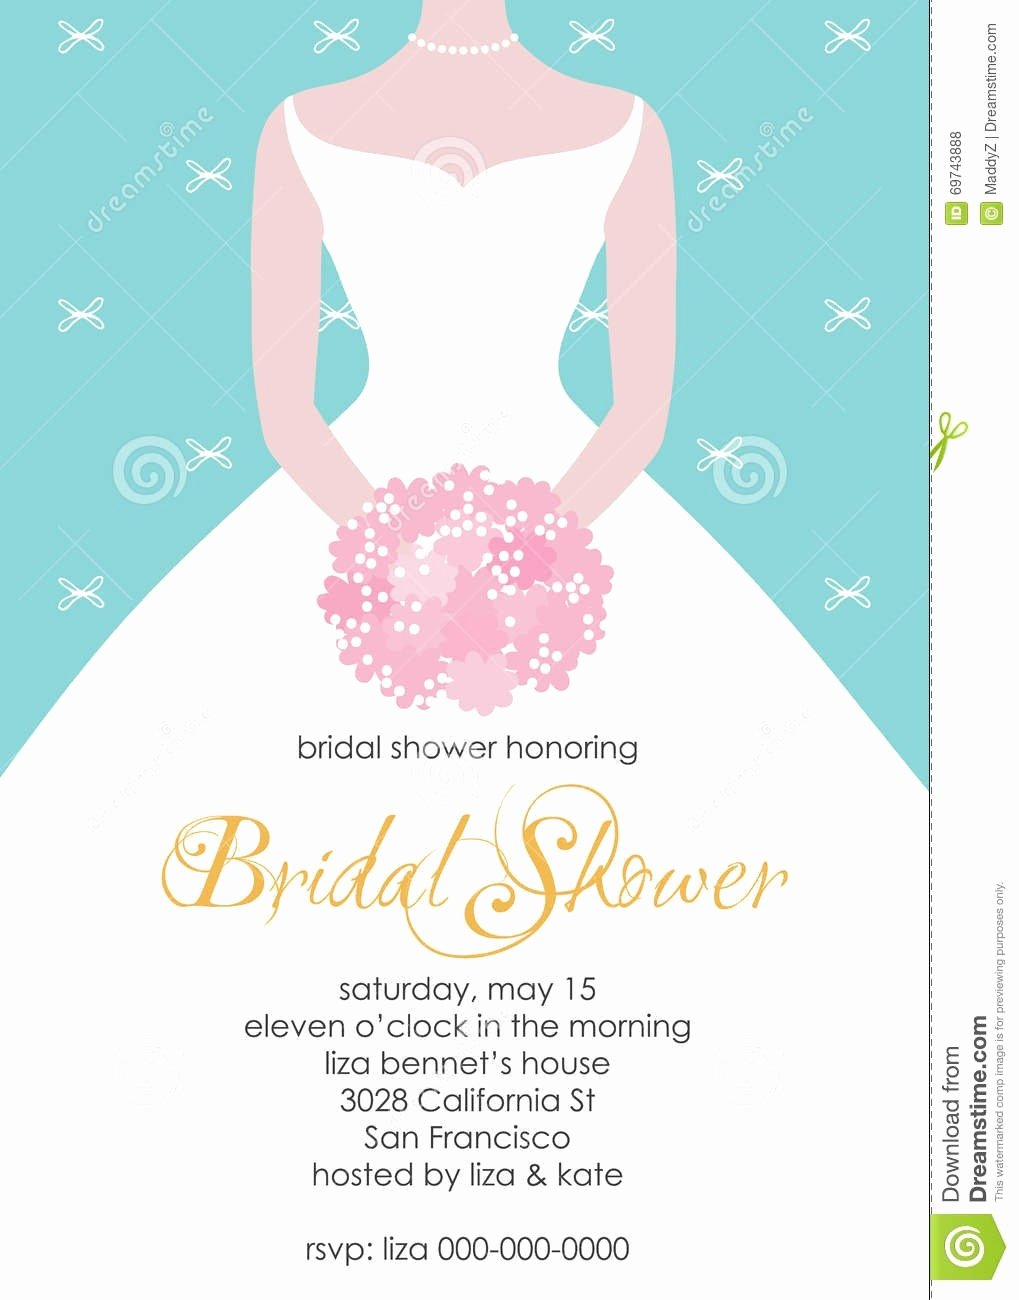 Wedding Dress Invitation Template Inspirational Cool Dress Bridal Shower Invitations Latest Trend